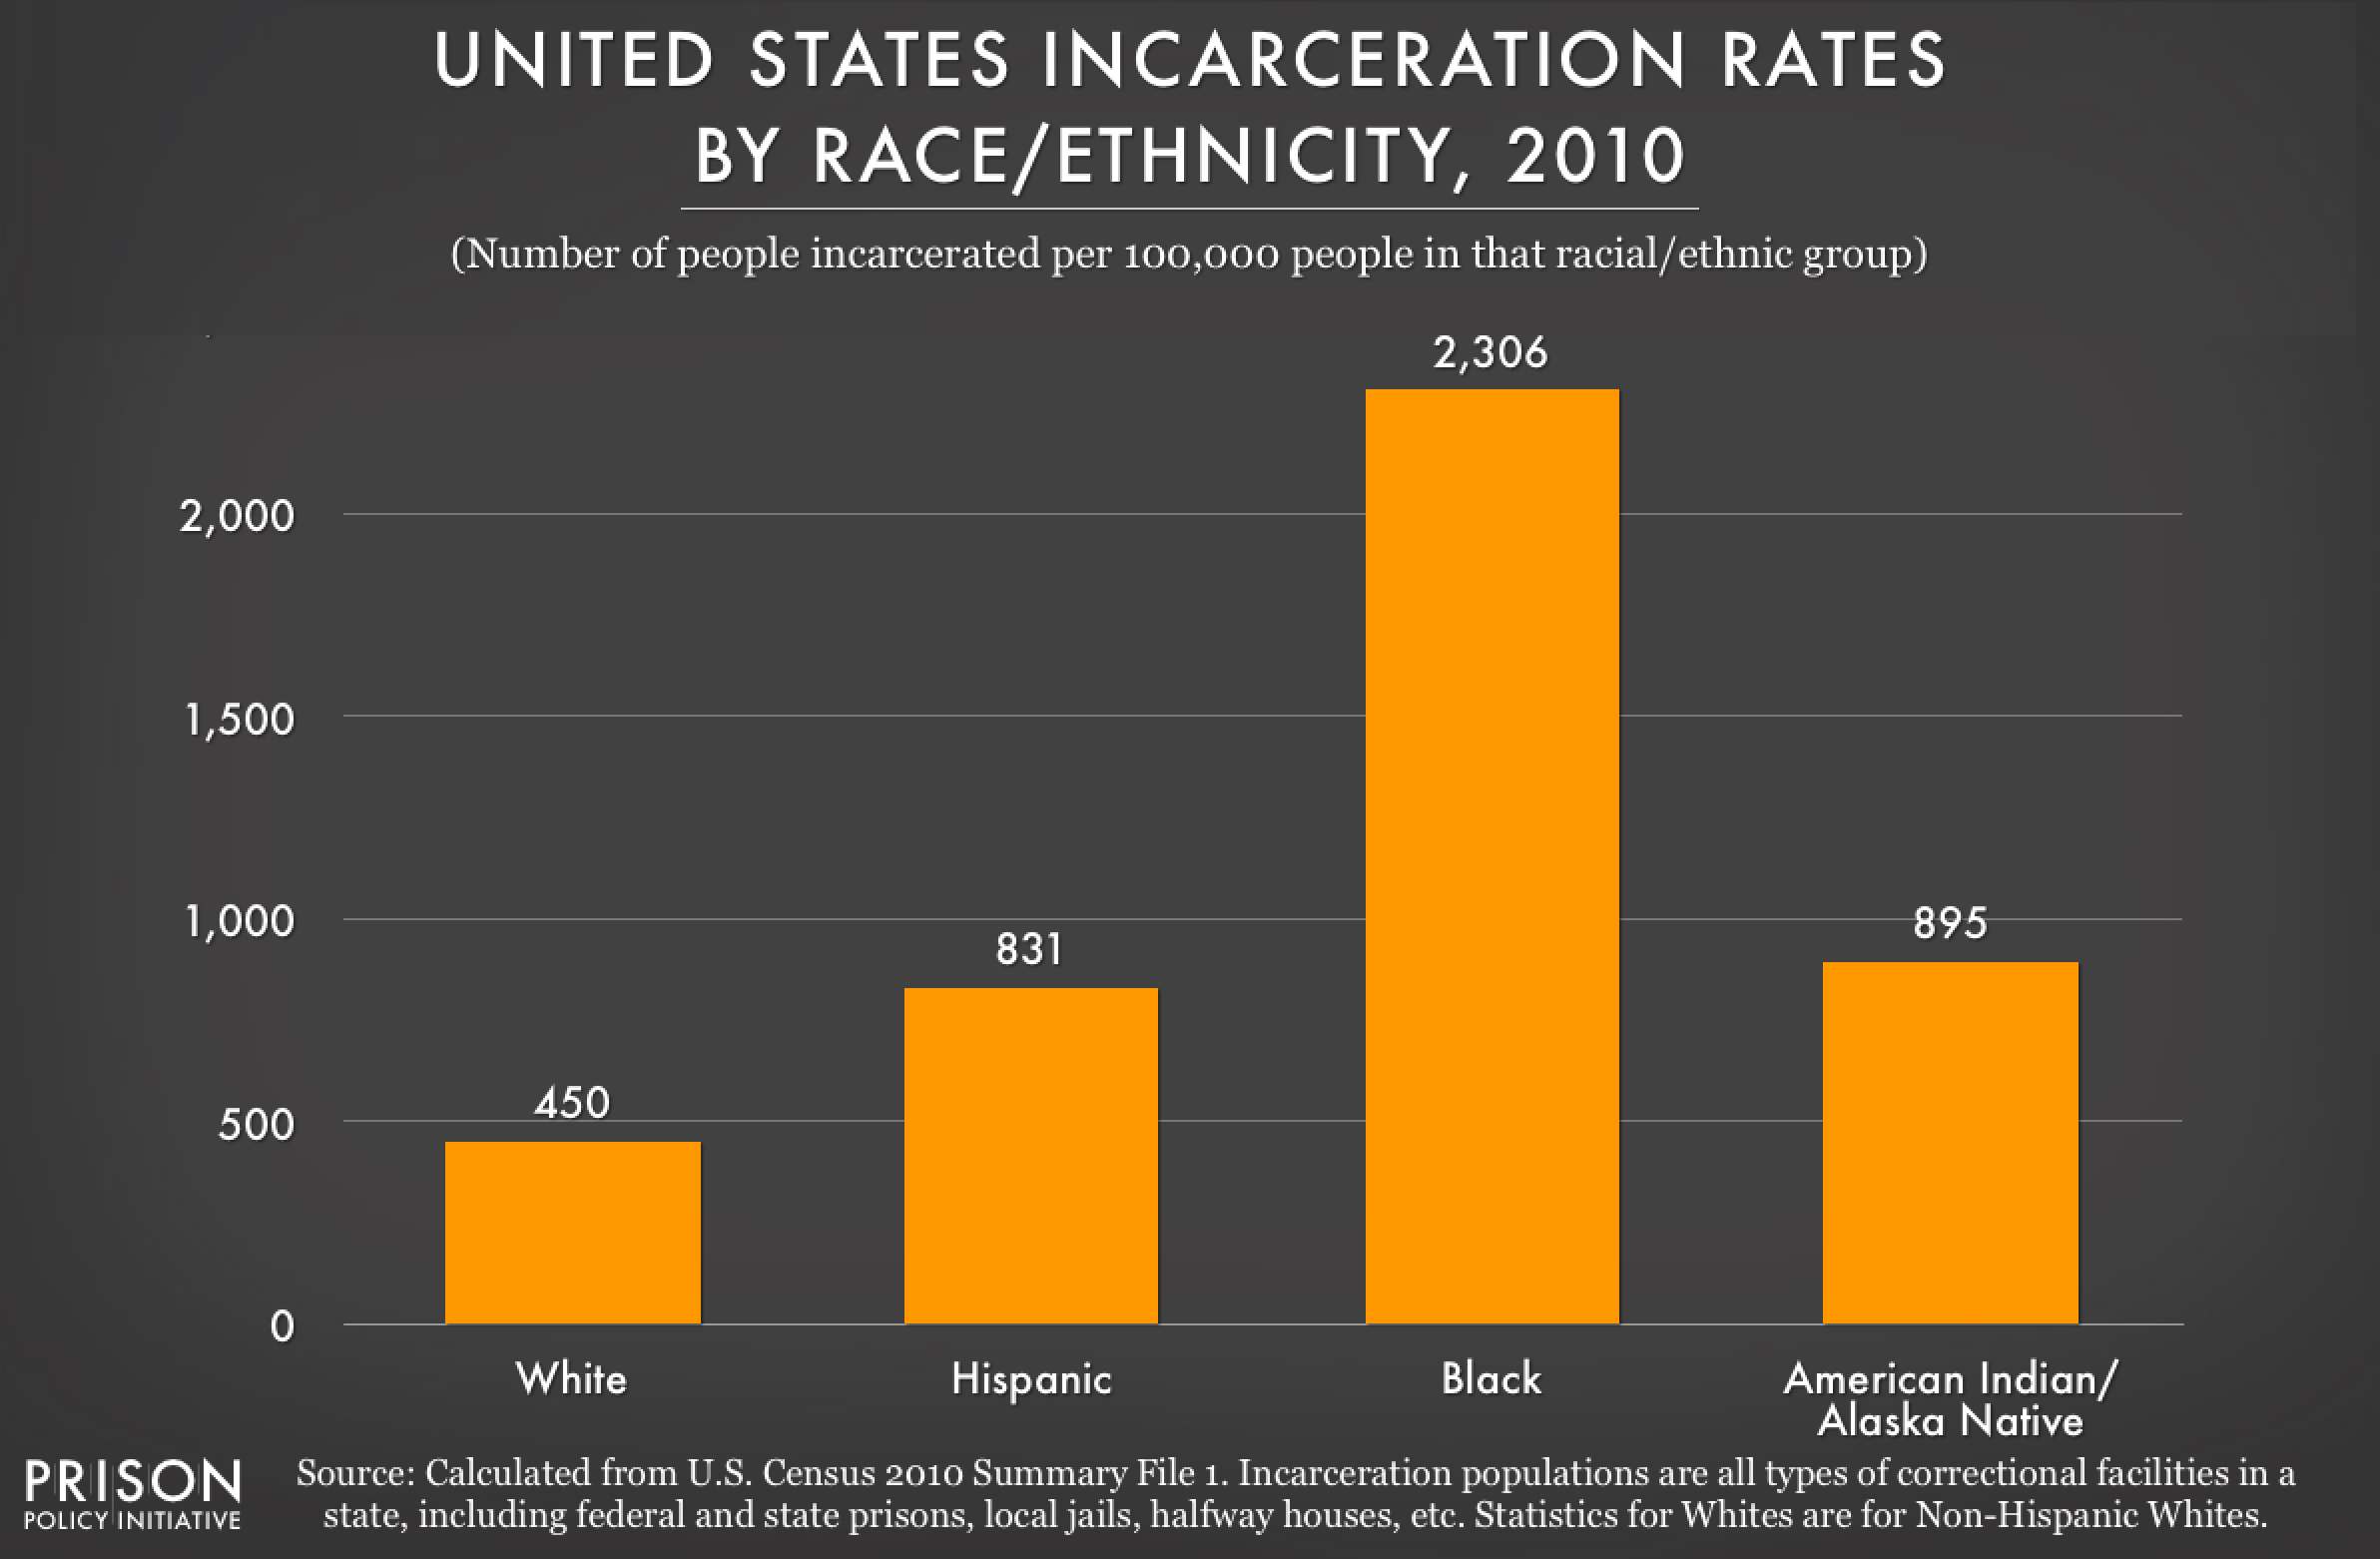 2010 graph showing incarceration rates per 100,000 people of various racial and ethnic groups in the United States